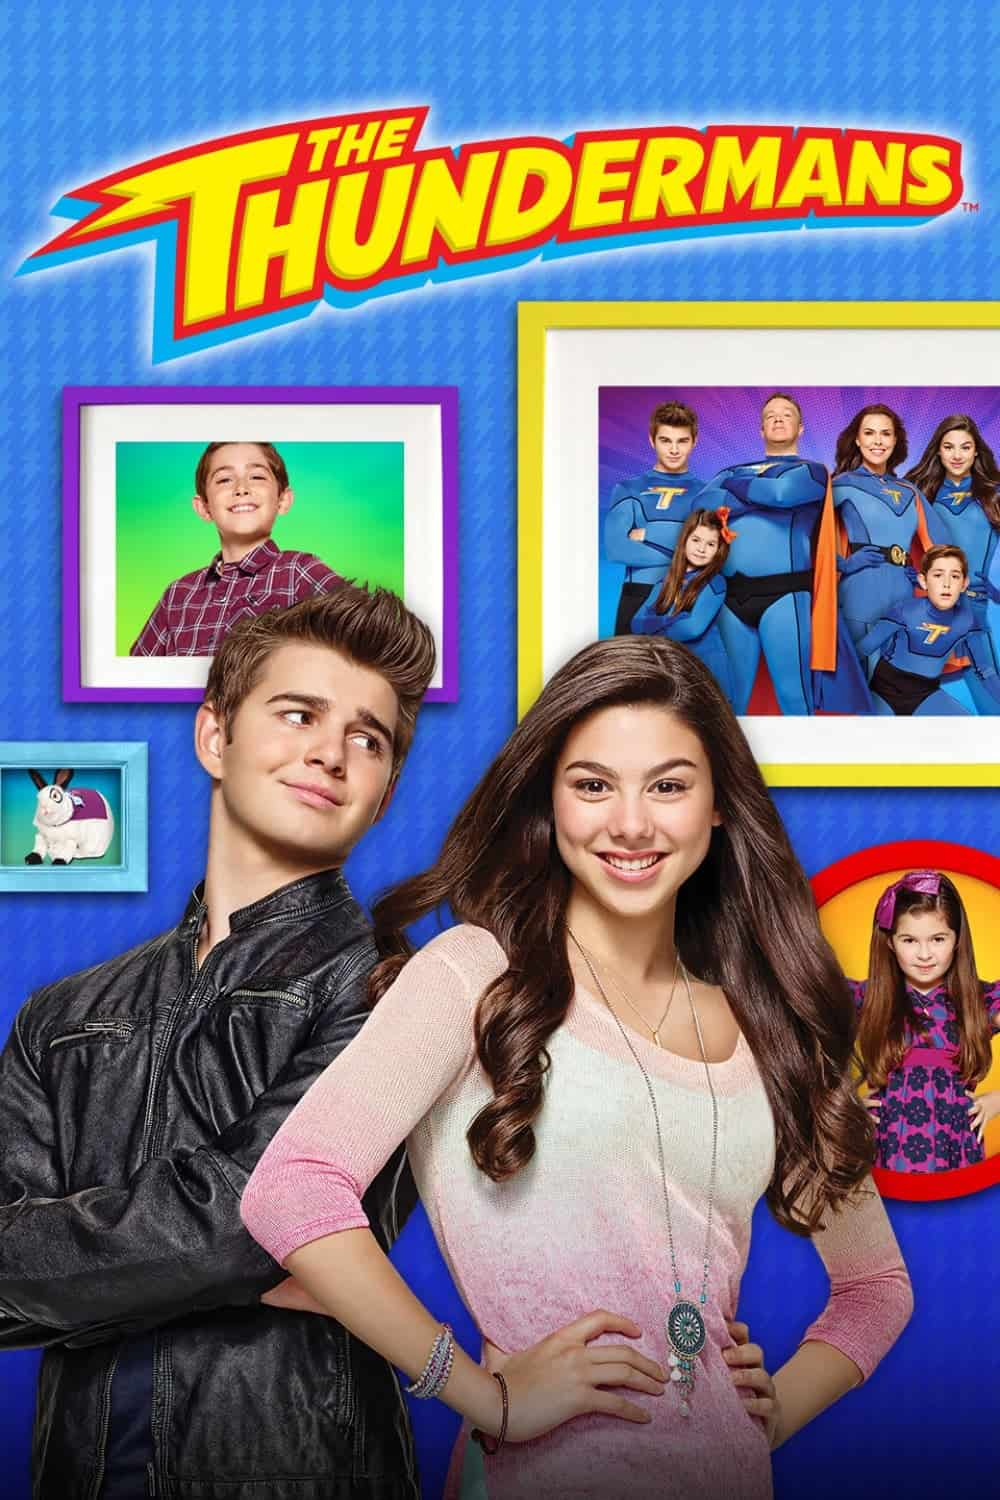 The Thundermans, 2013